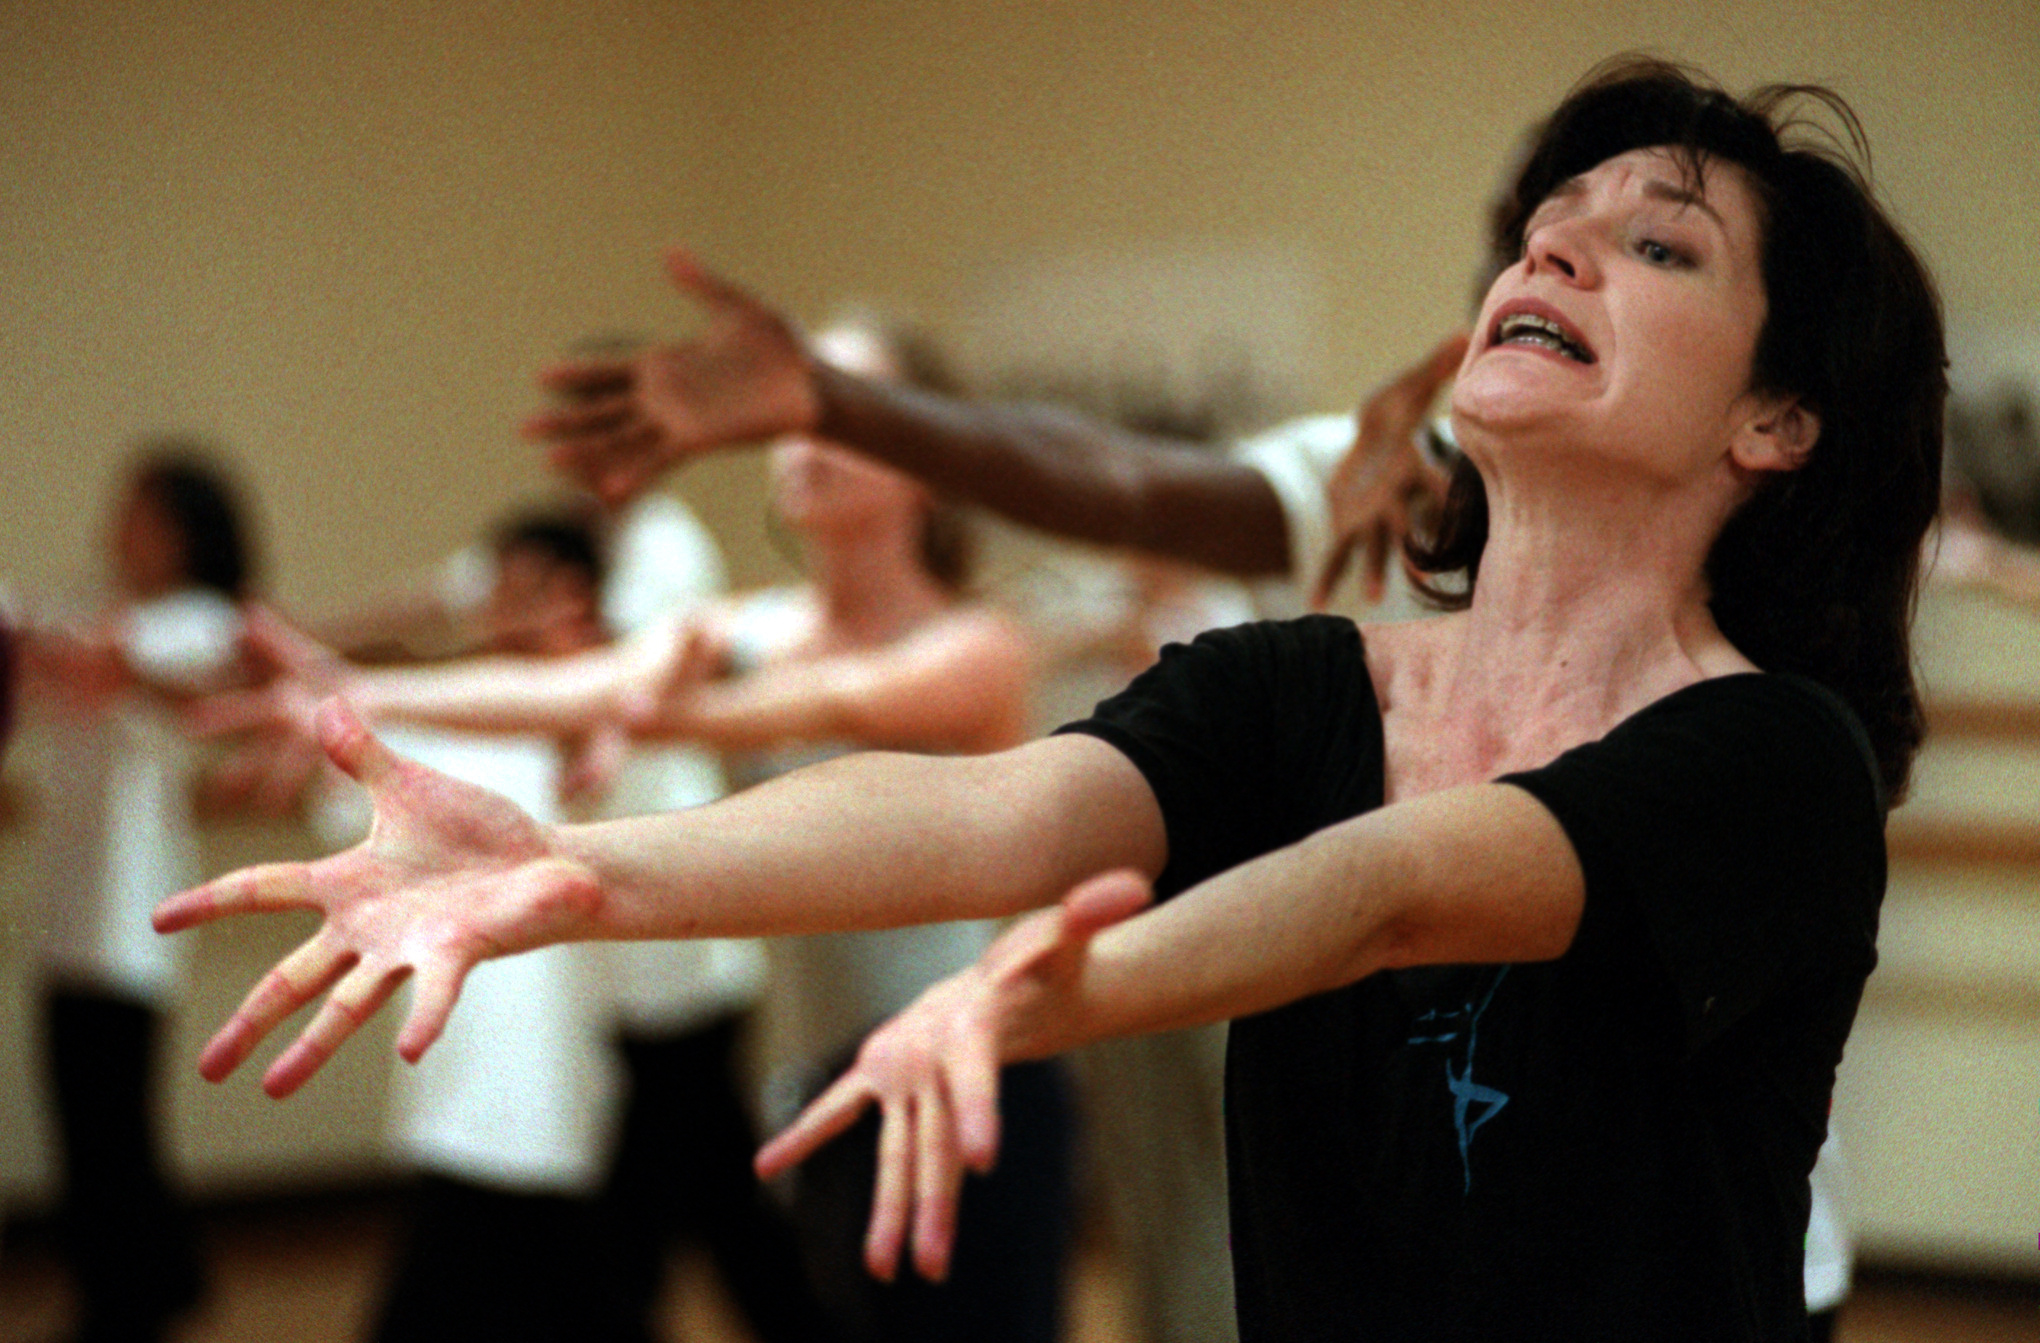 As the founder and guiding spirit of the Saint Joseph Ballet, Beth Burn's main job is to teach dance classes and run the organization which has served thousands of underprivileged children and teens. Burns' philosophy has never varied: The dance classes and performances help her students develop self-esteem, discipline and a sense of achievement, she says.  ©Gail Fisher Los Angeles Times